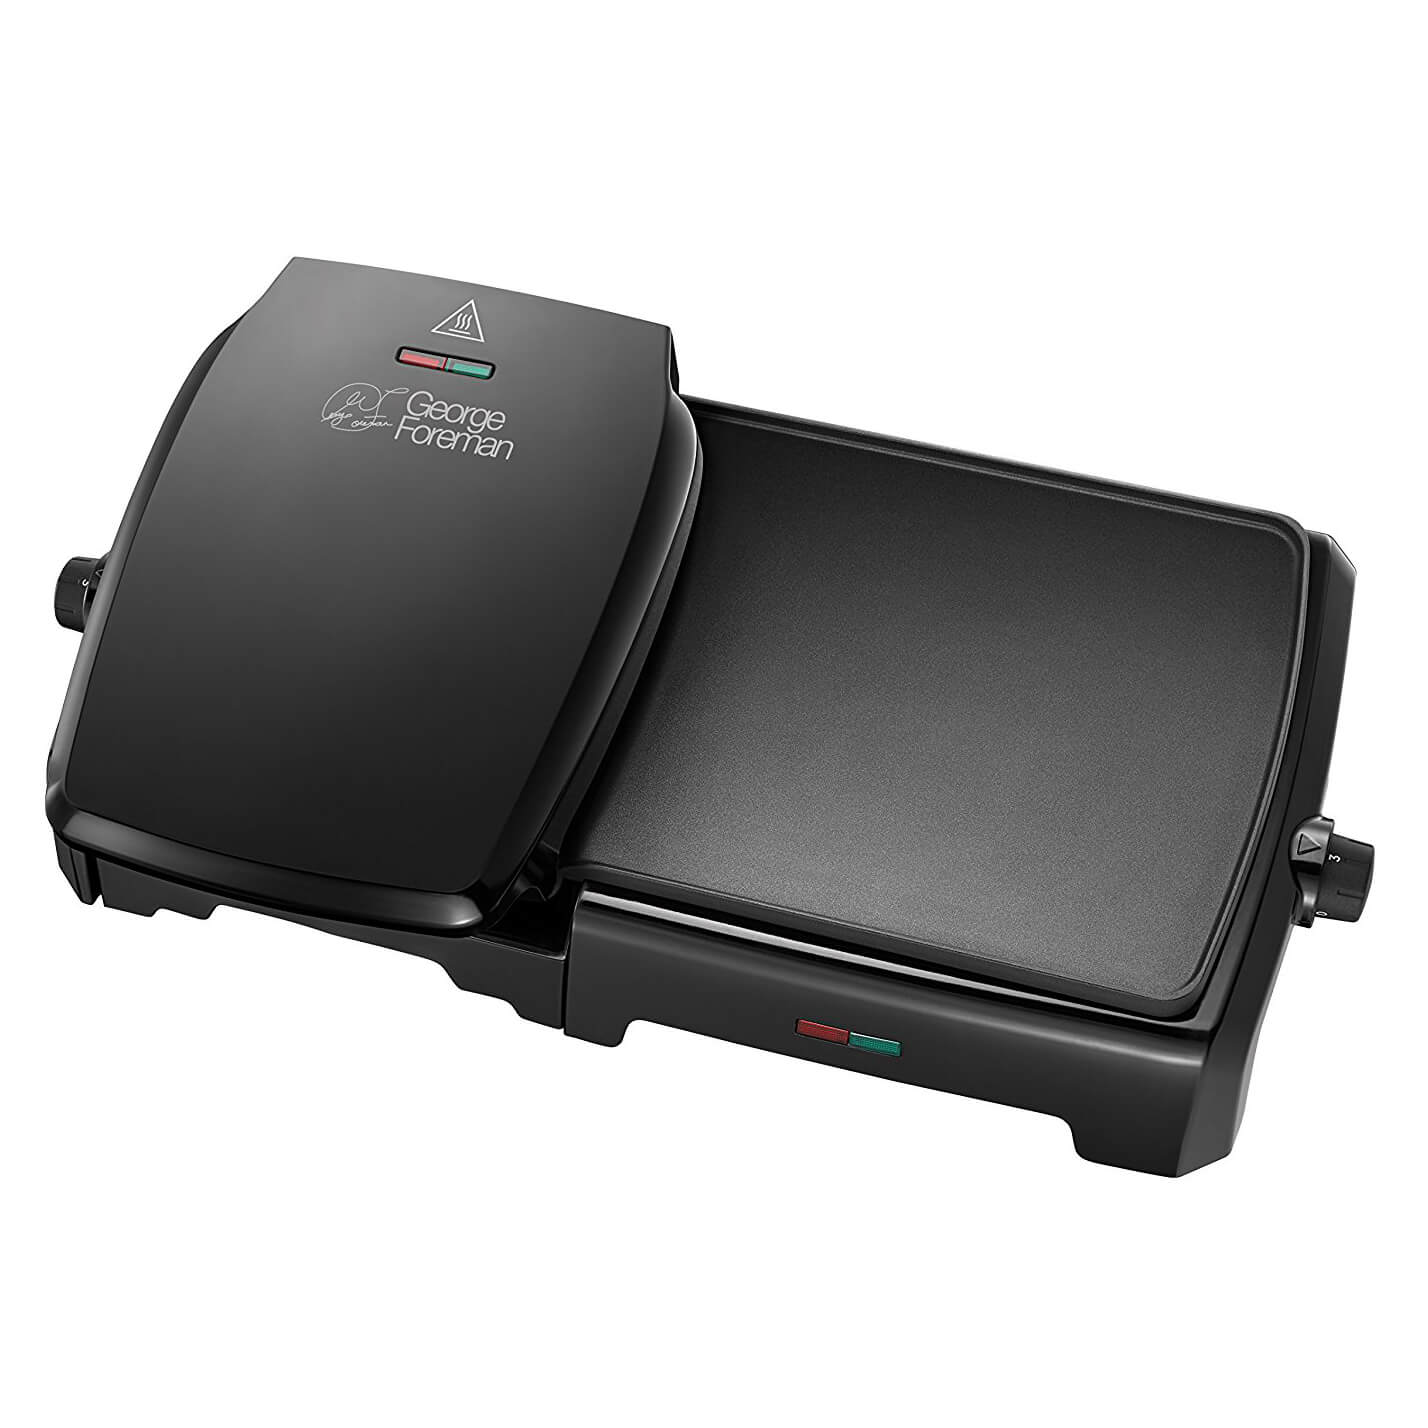 Russell Hobbs George Foreman Grill Griddle